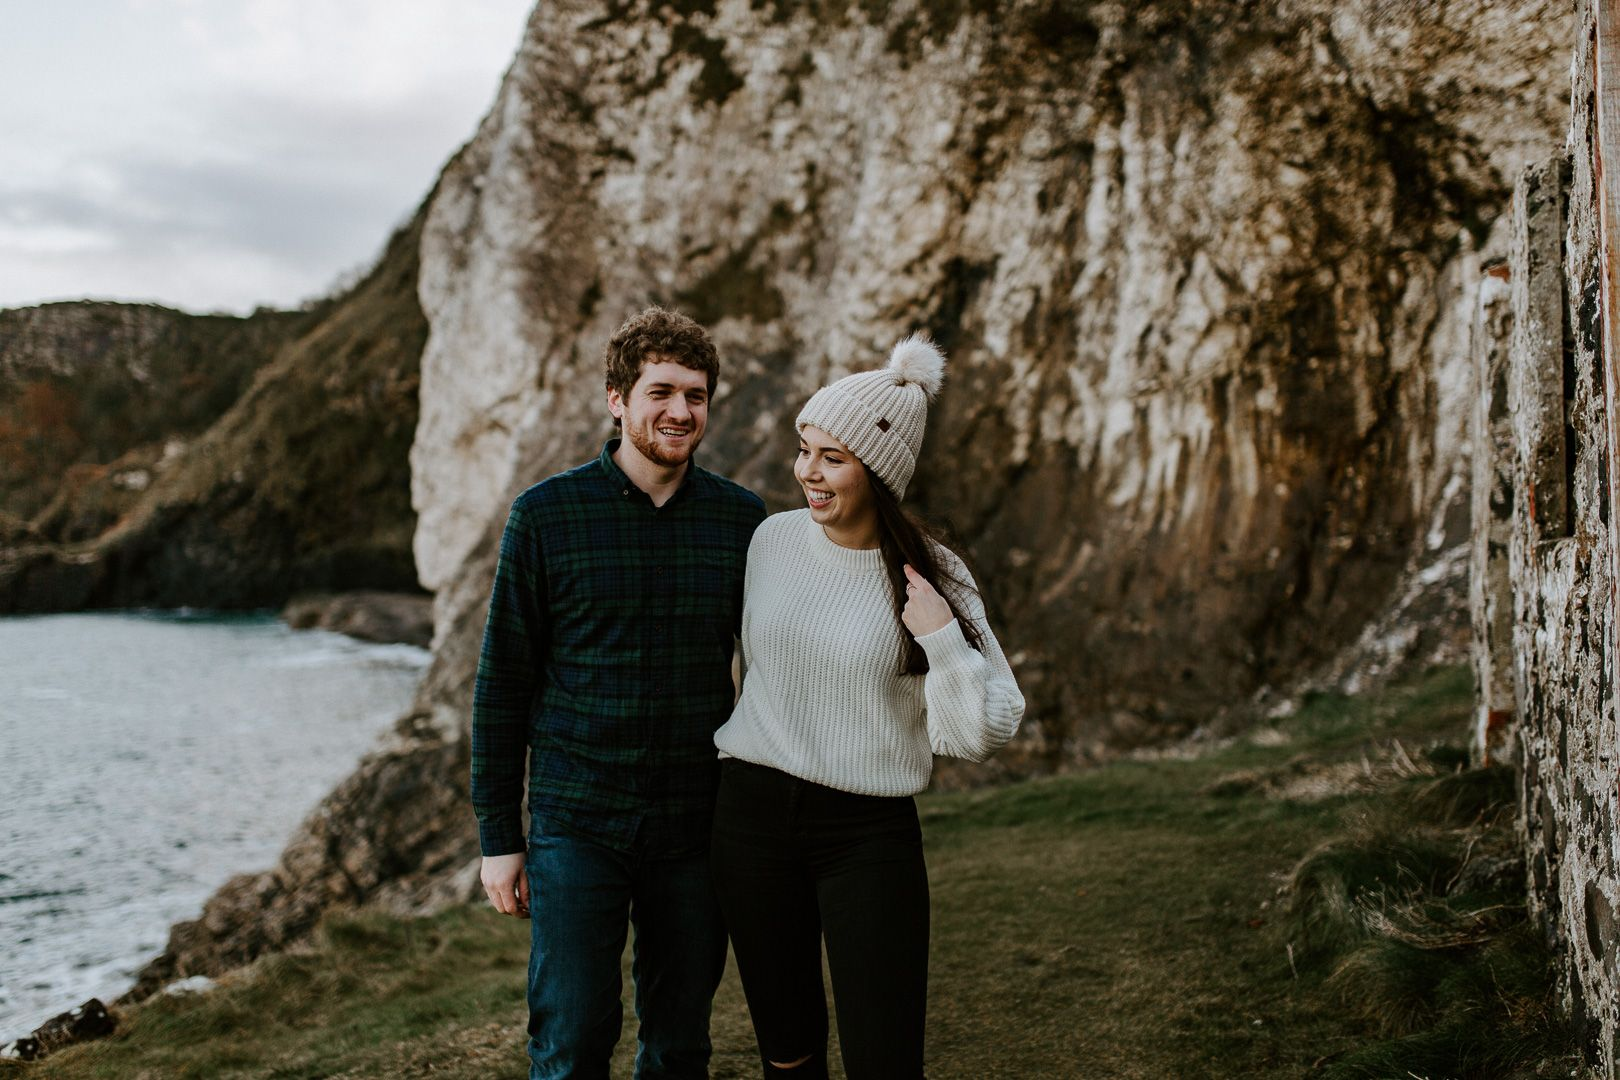 Couple Engagement photoshoot at Ireland Coast